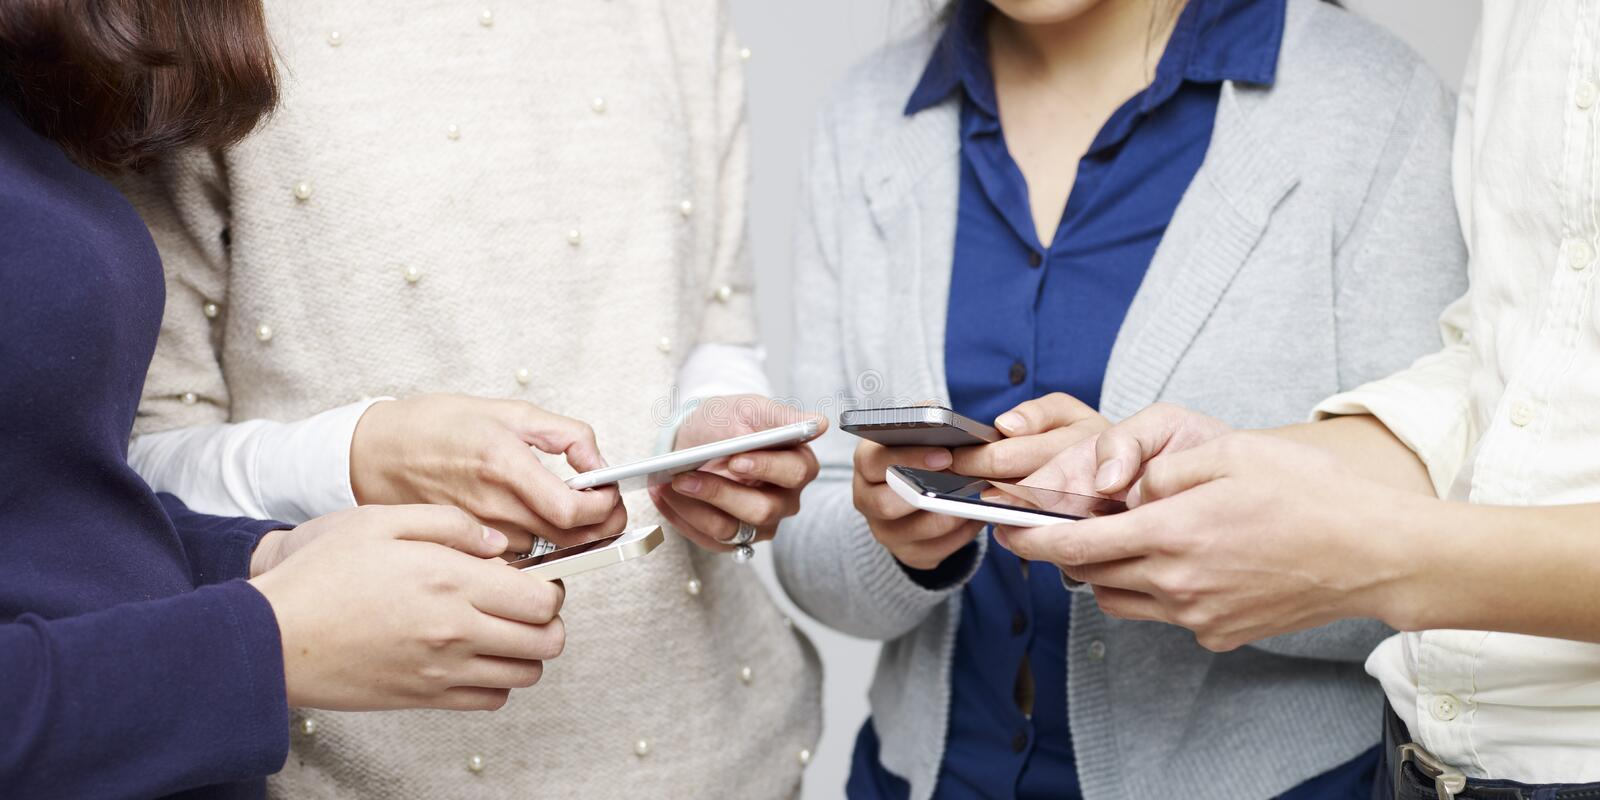 People using cellphone royalty free stock photo